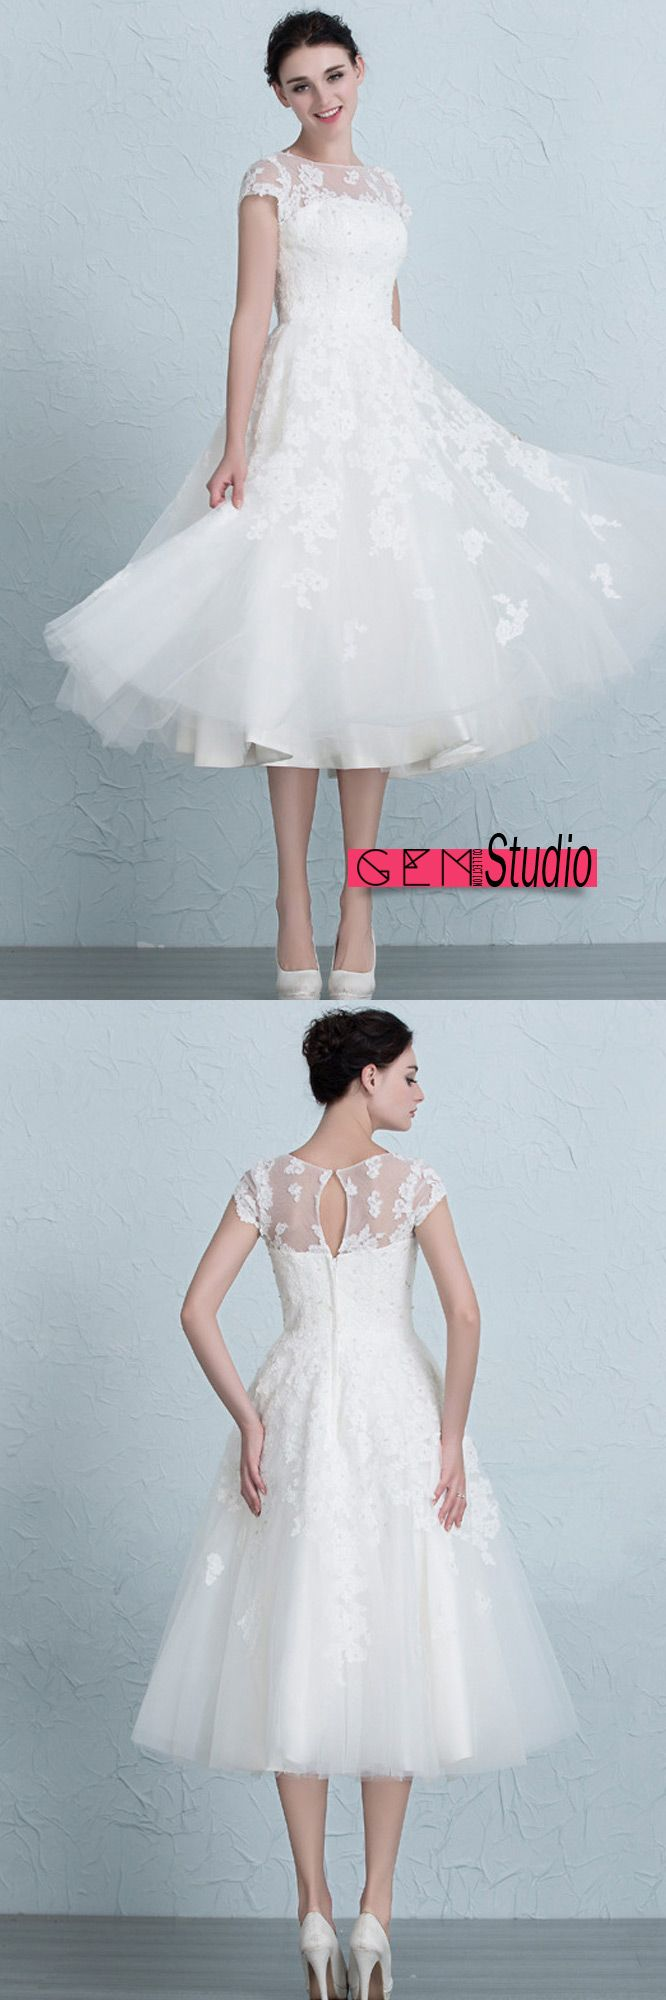 Vintage Tea Length Wedding Dresses Empire Waist Lace Tulle A-Line ...